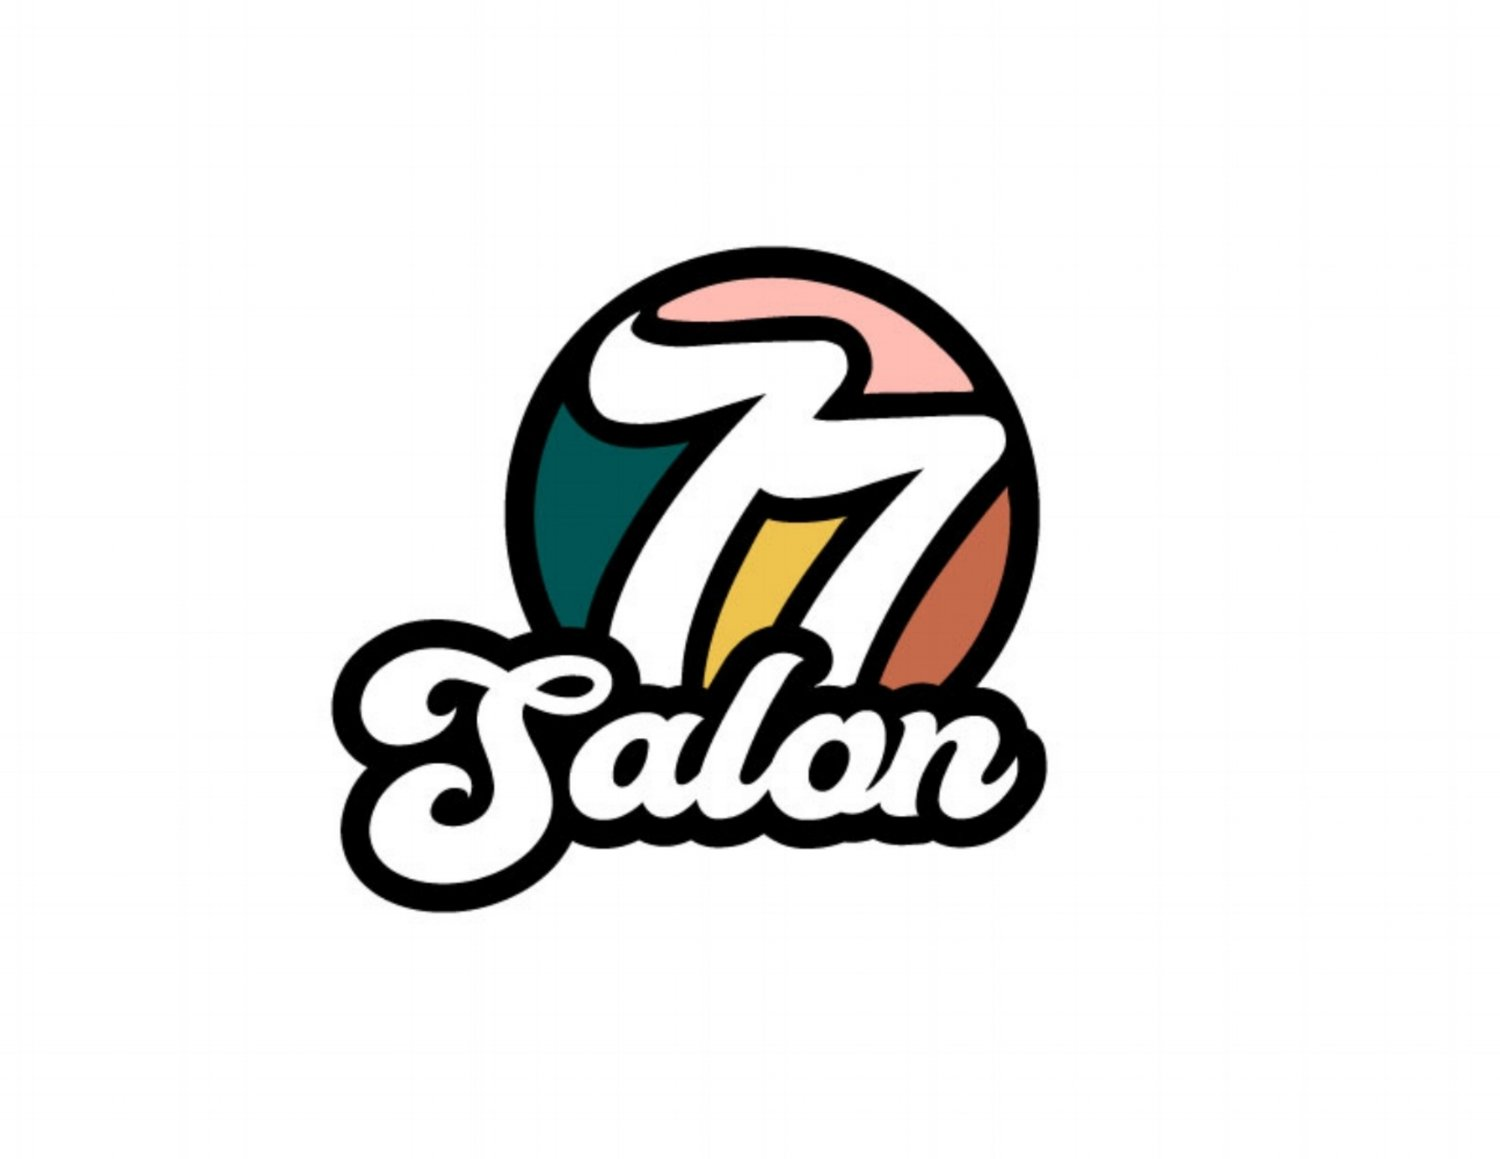 77 Salon | Portland's Best Hair and Beauty Salon